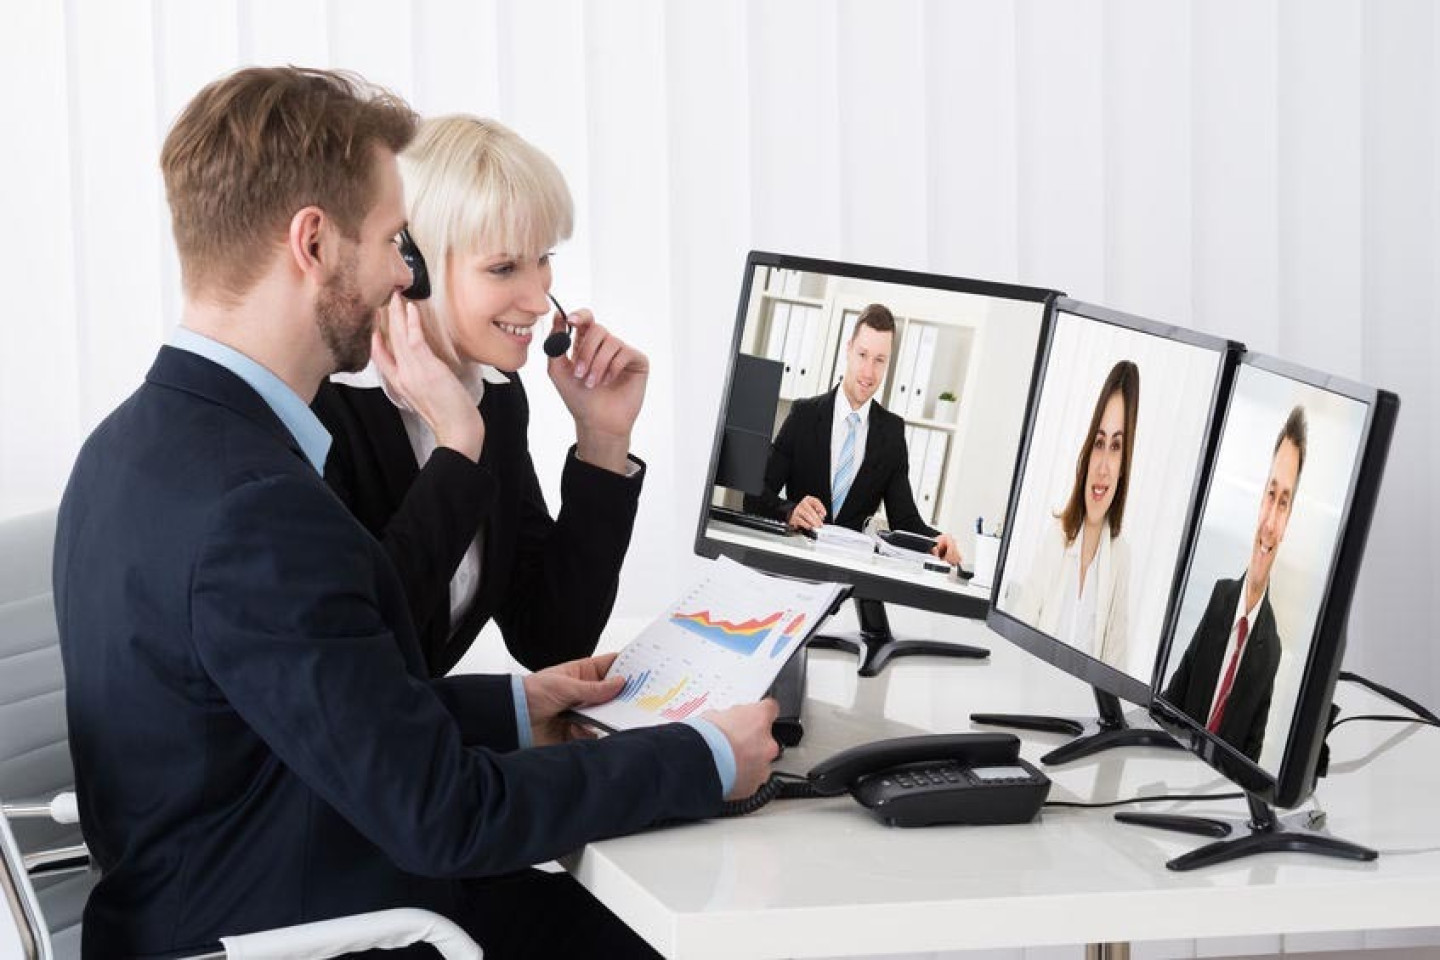 54885331 - two businesspeople video conferencing on desk with multiple computer